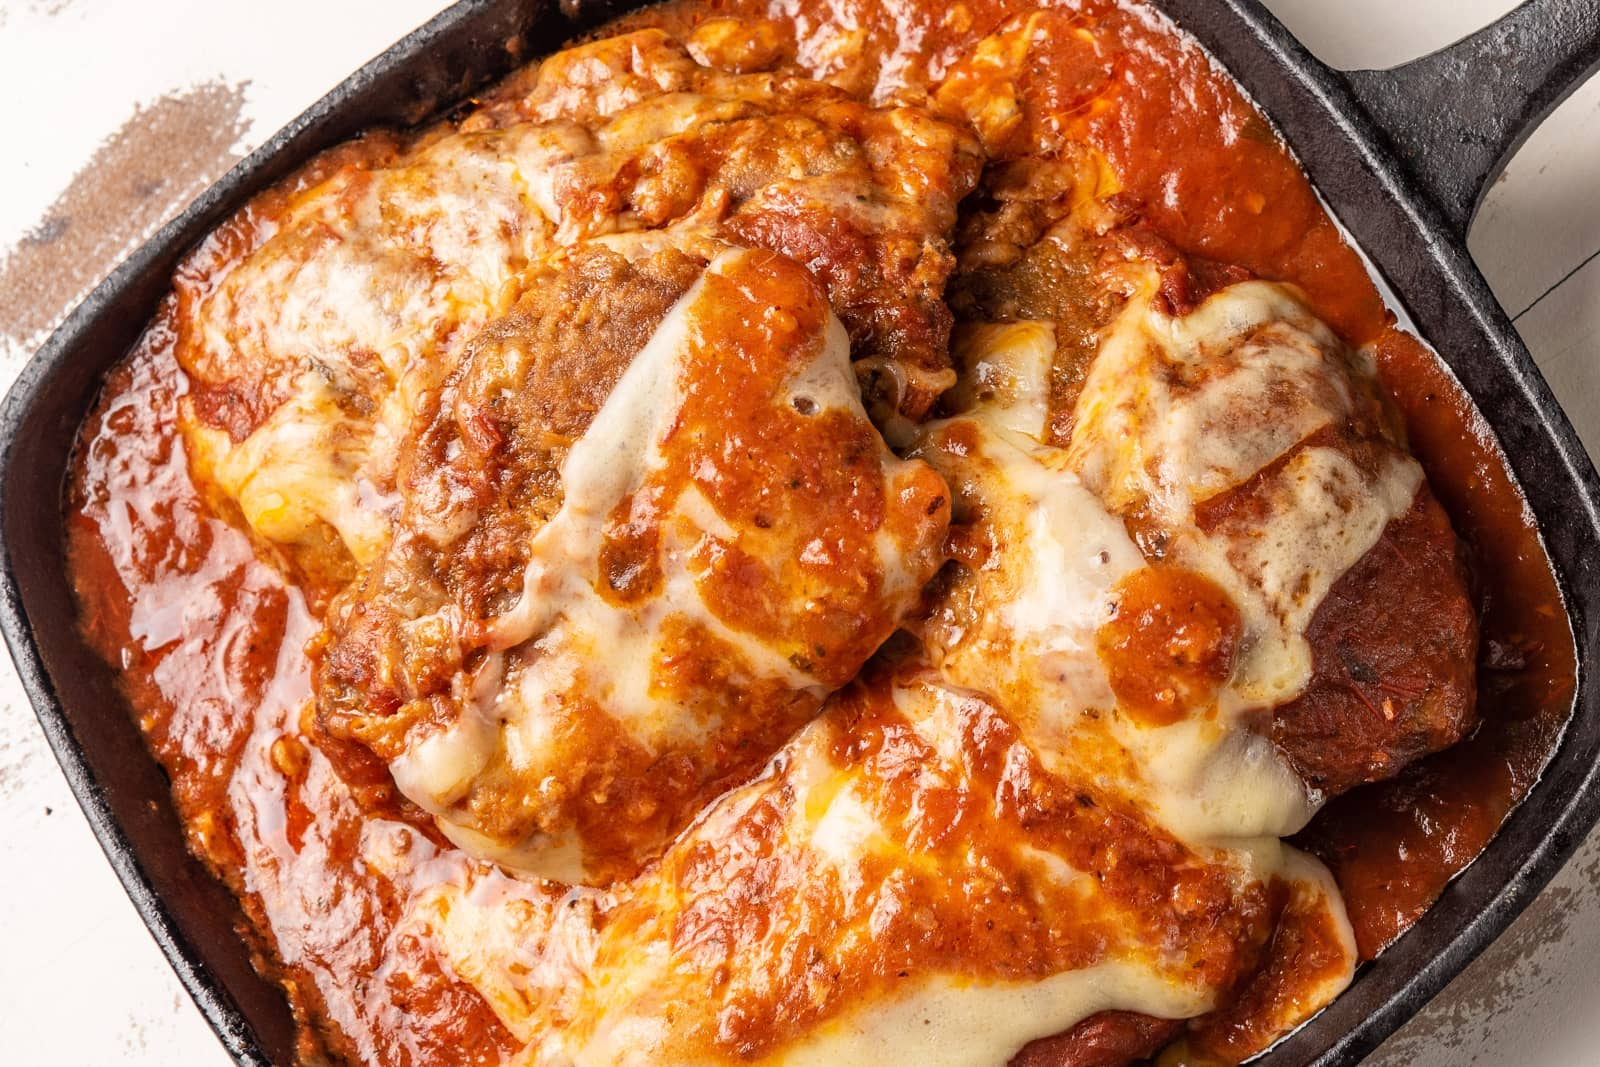 Chicken parmesan in cast iron pan, ready to serve